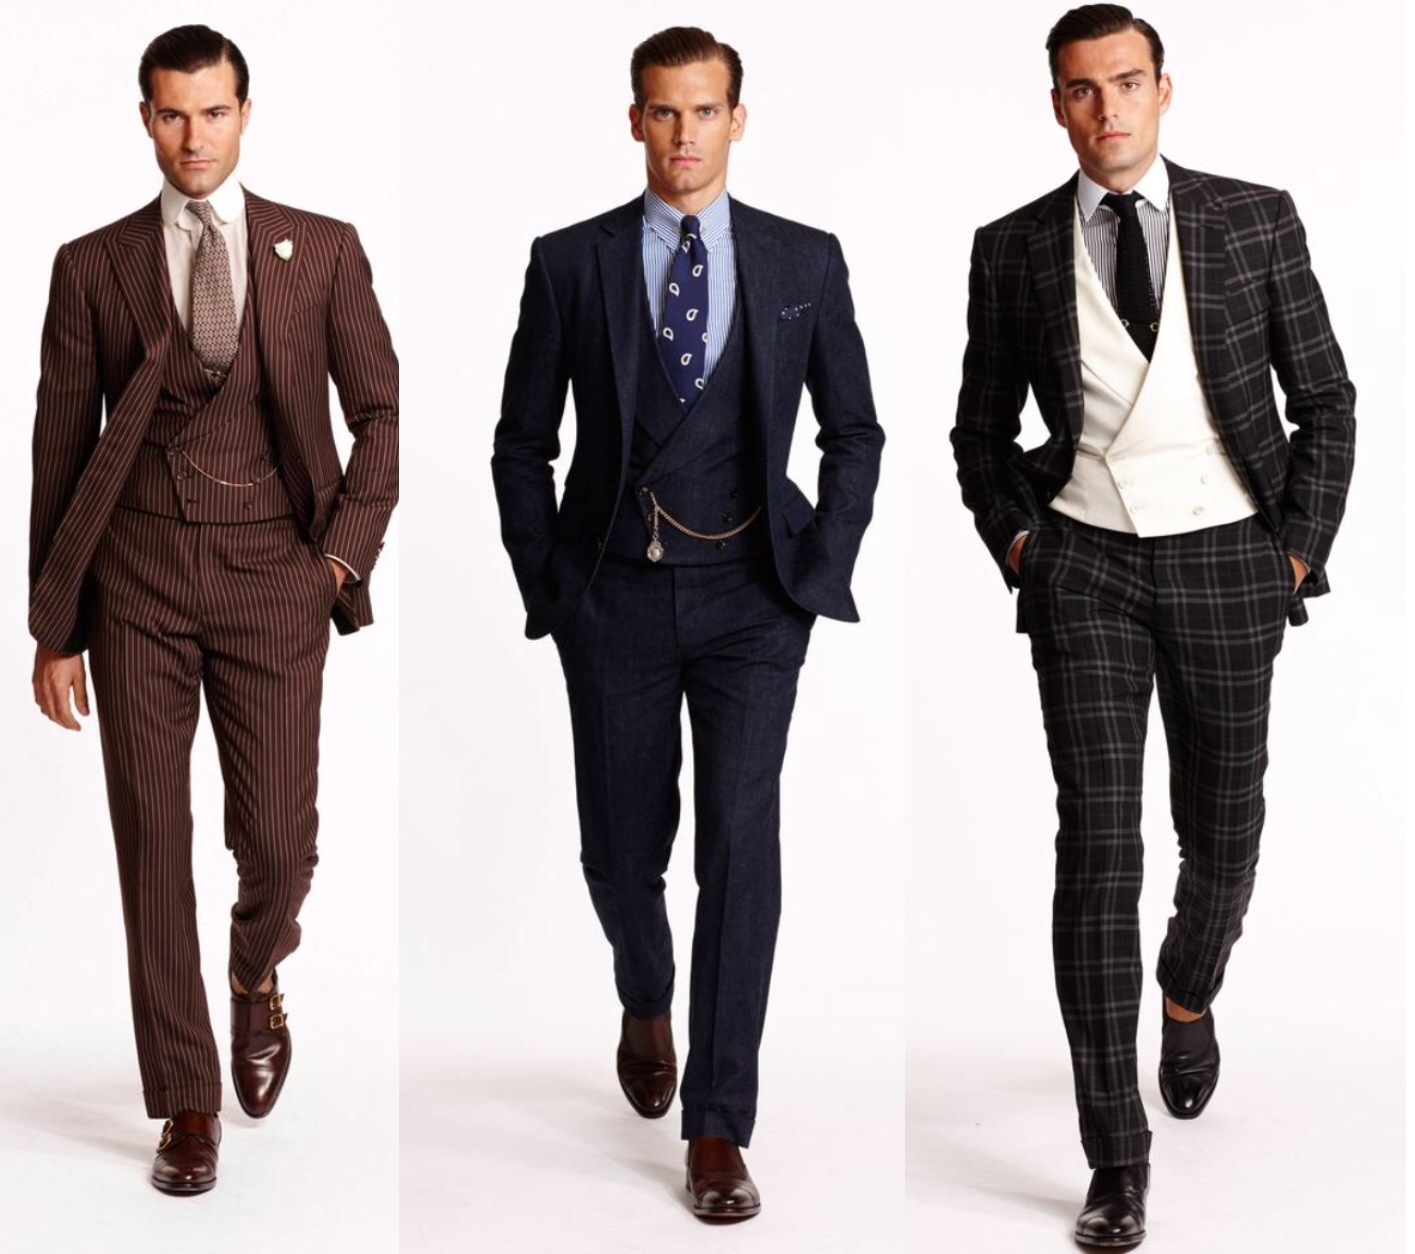 Latest Men Fashion Trends 2015 Tagged clothing